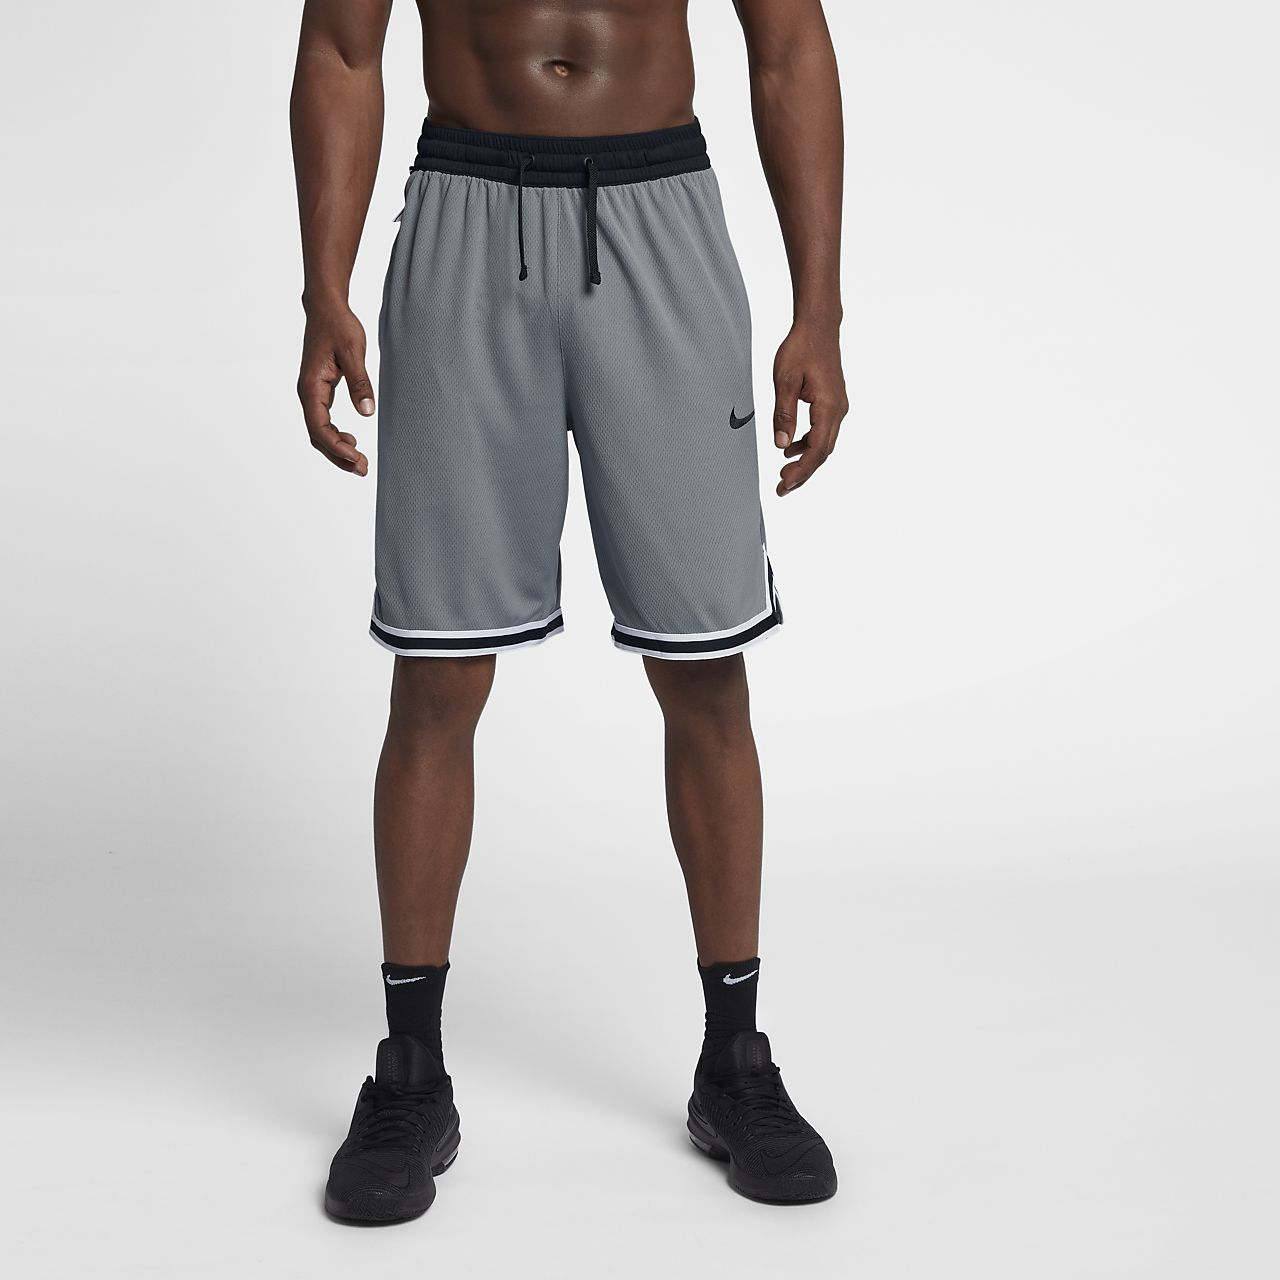 5a8adf9f26050d Nike Dri-FIT DNA Men s Basketball Shorts. Nike.com